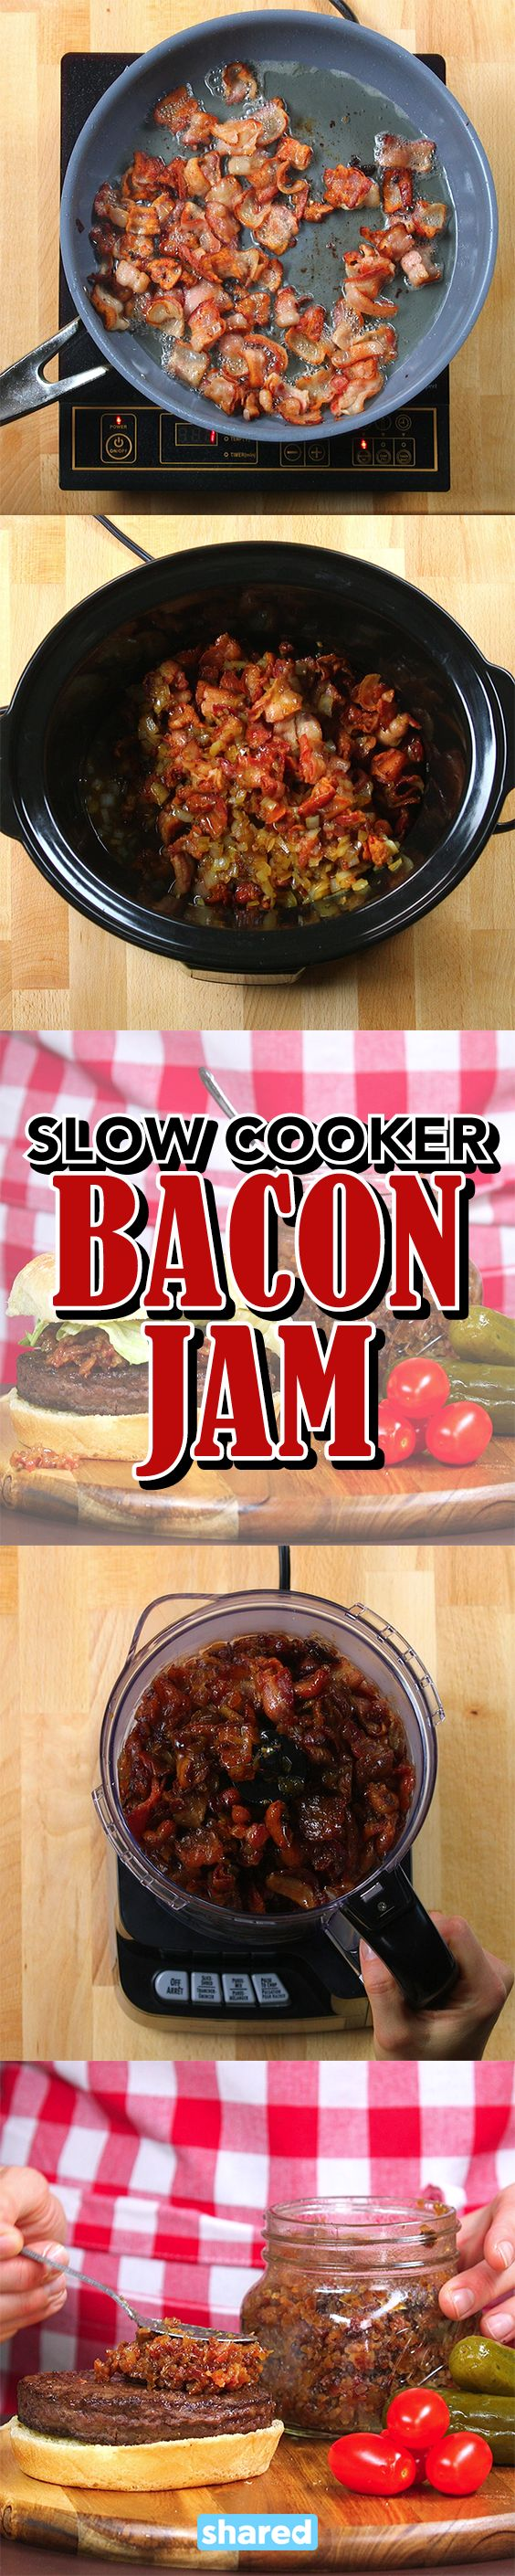 Slow Cooker Bacon Jam More